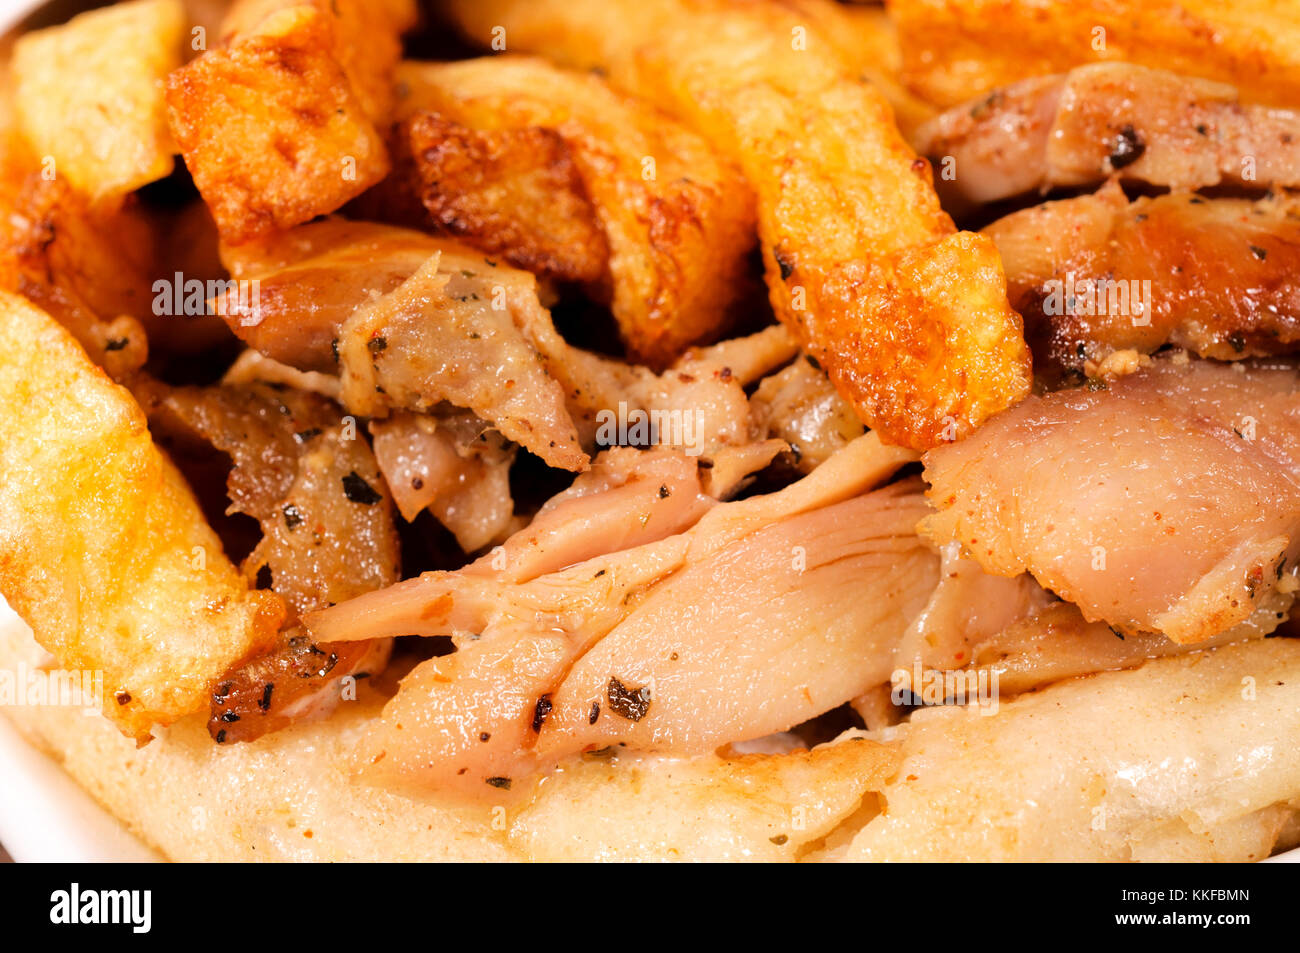 French fries and chicken meat - Stock Image